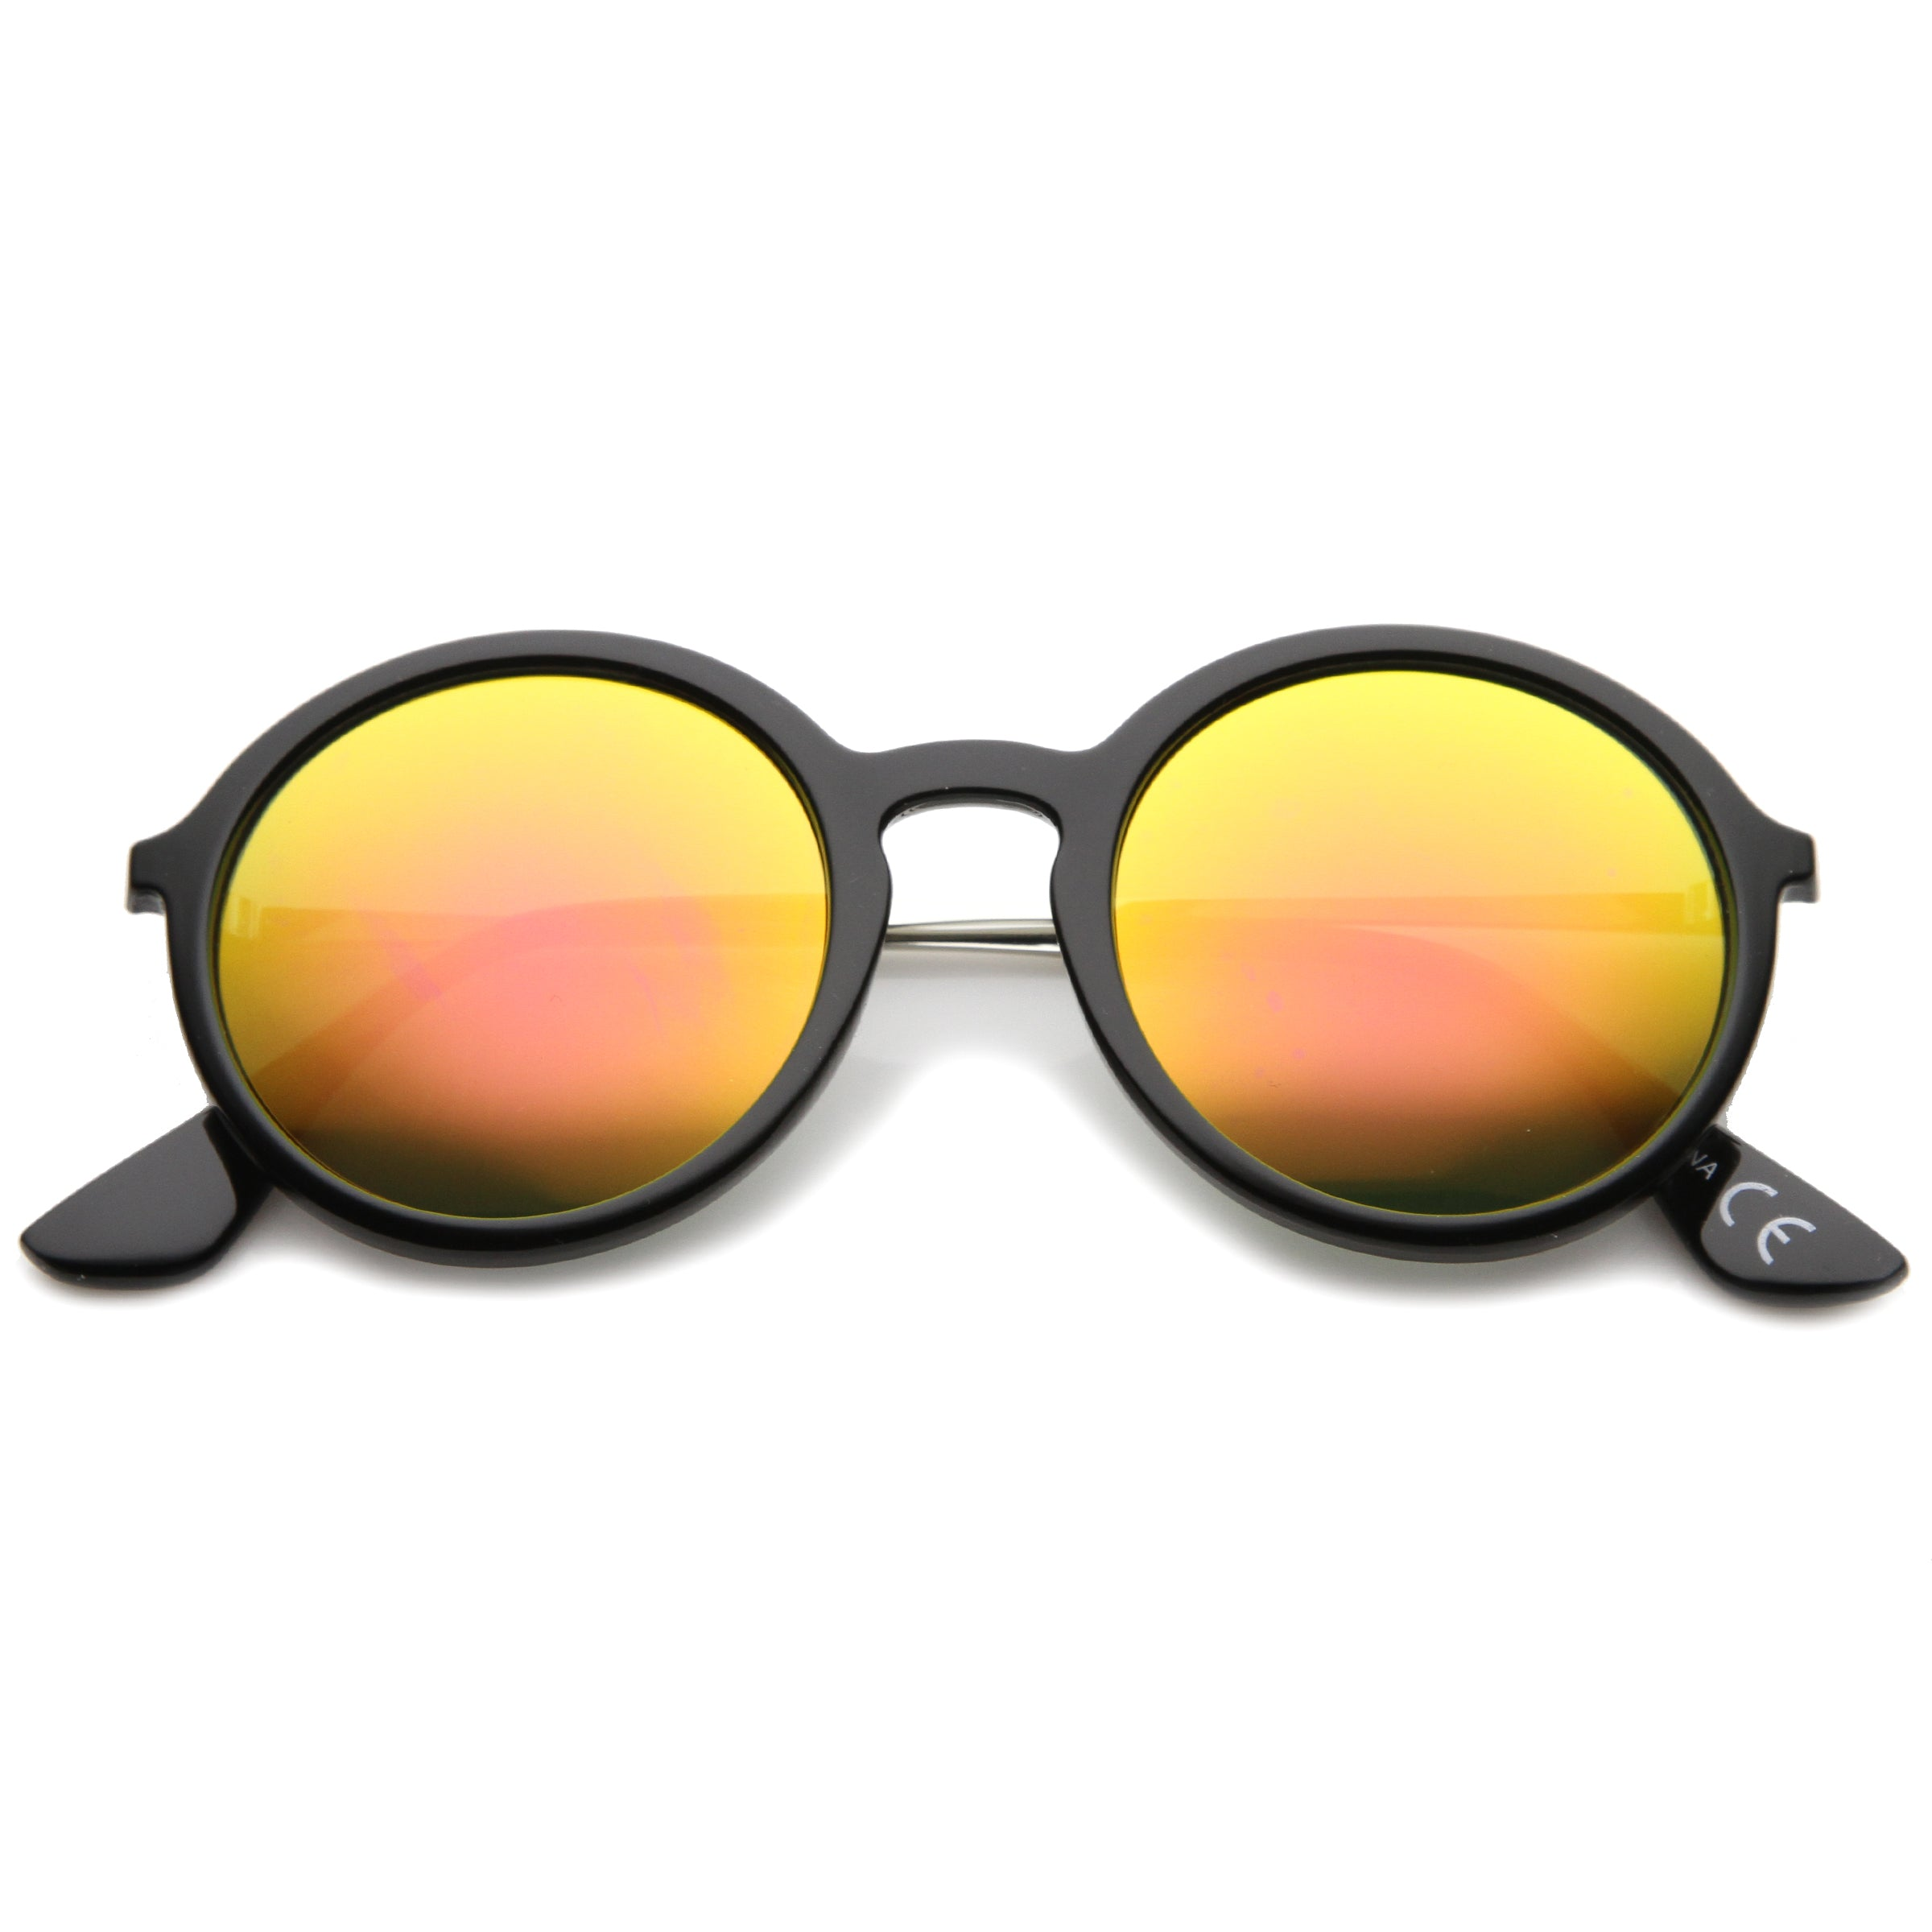 Mid Sized Modern Metal Temple Mirror Lens Round Sunglasses 49mm - sunglass.la - 13